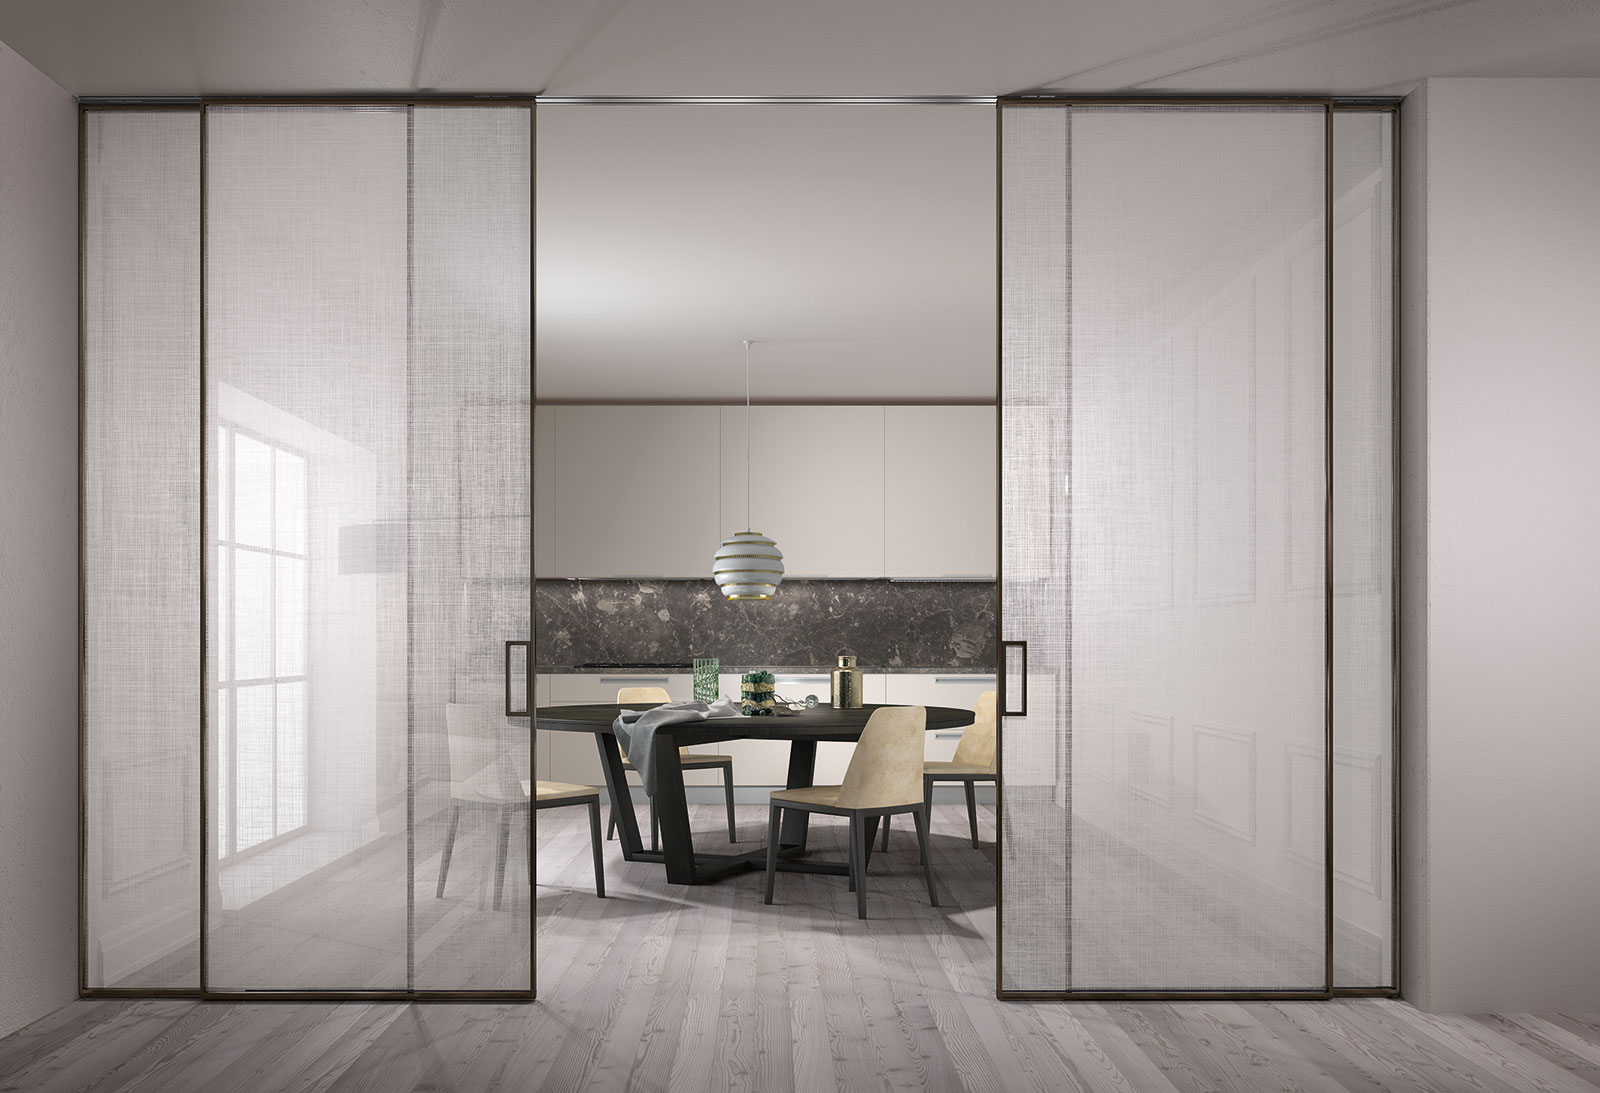 Extralight clear glass Trame decorations anodized mocha profiles built-in sliding system & MANHATTAN - Doors u0026 Systems | Henry glass